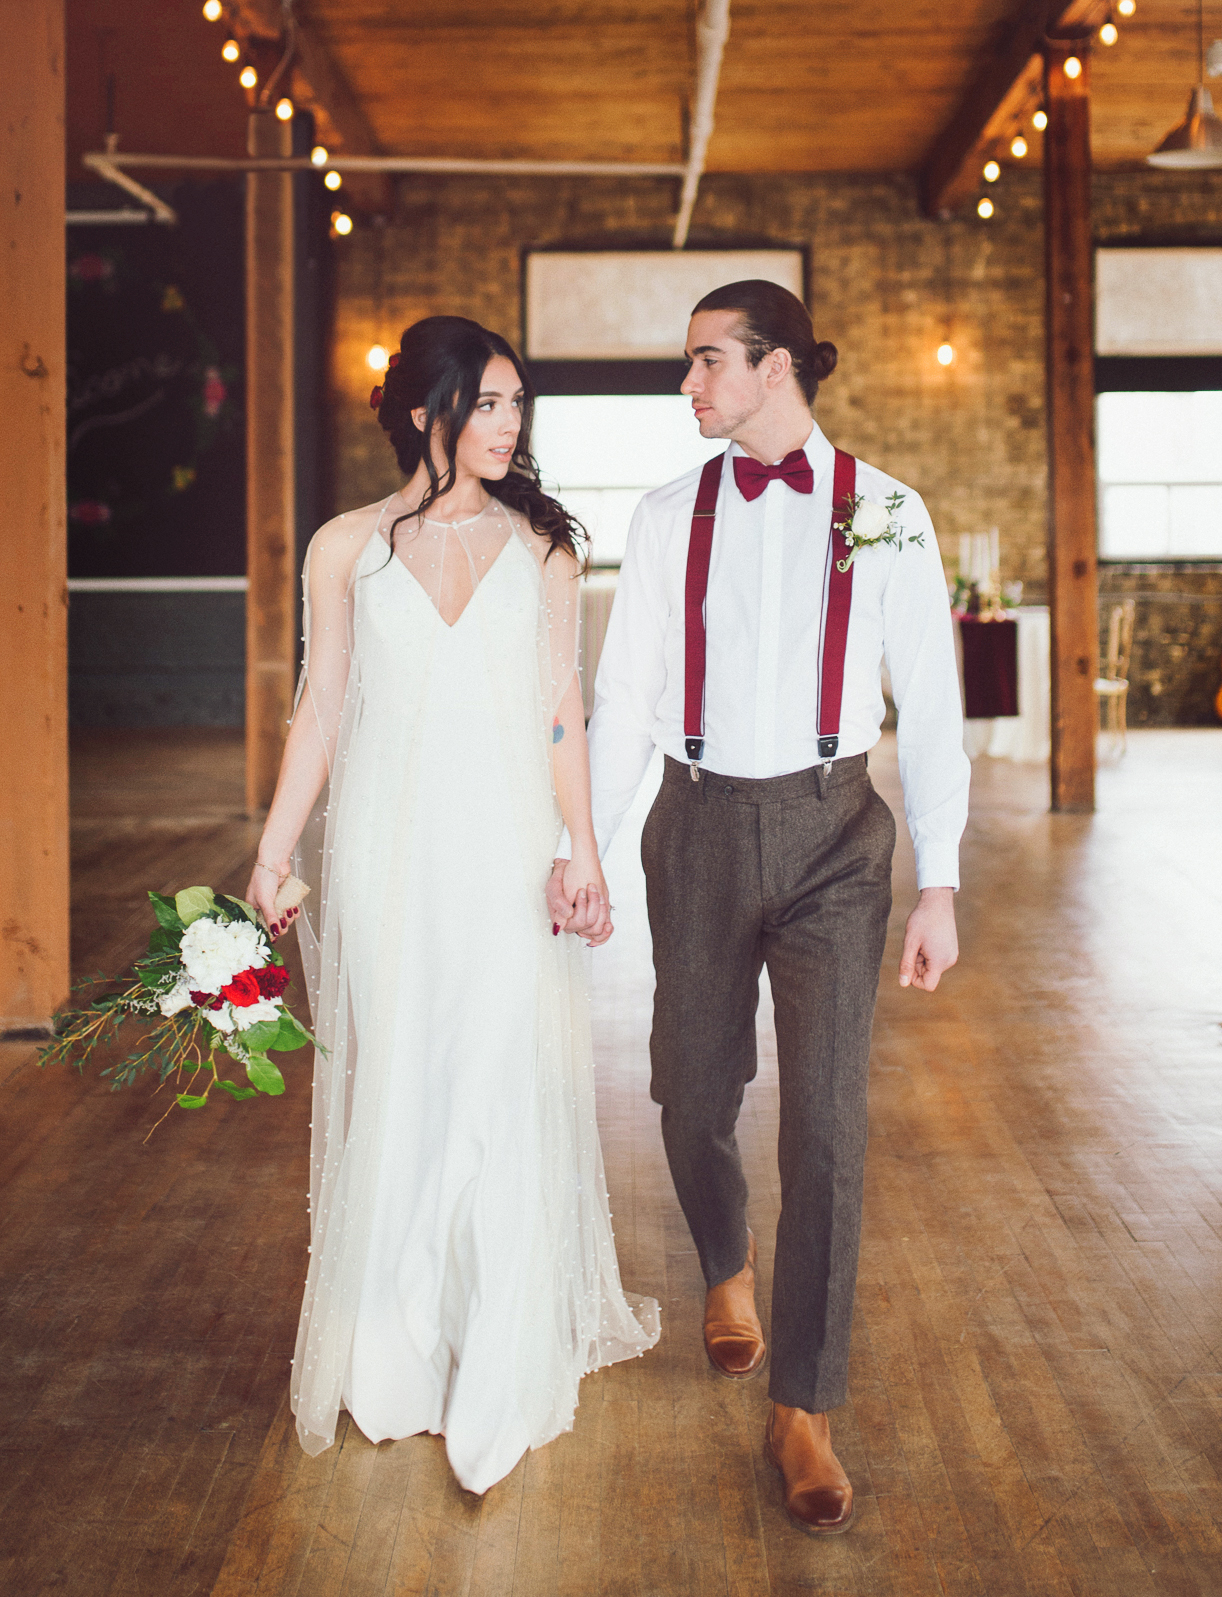 ACphoto_IndustrialWedding-67-edd.jpg